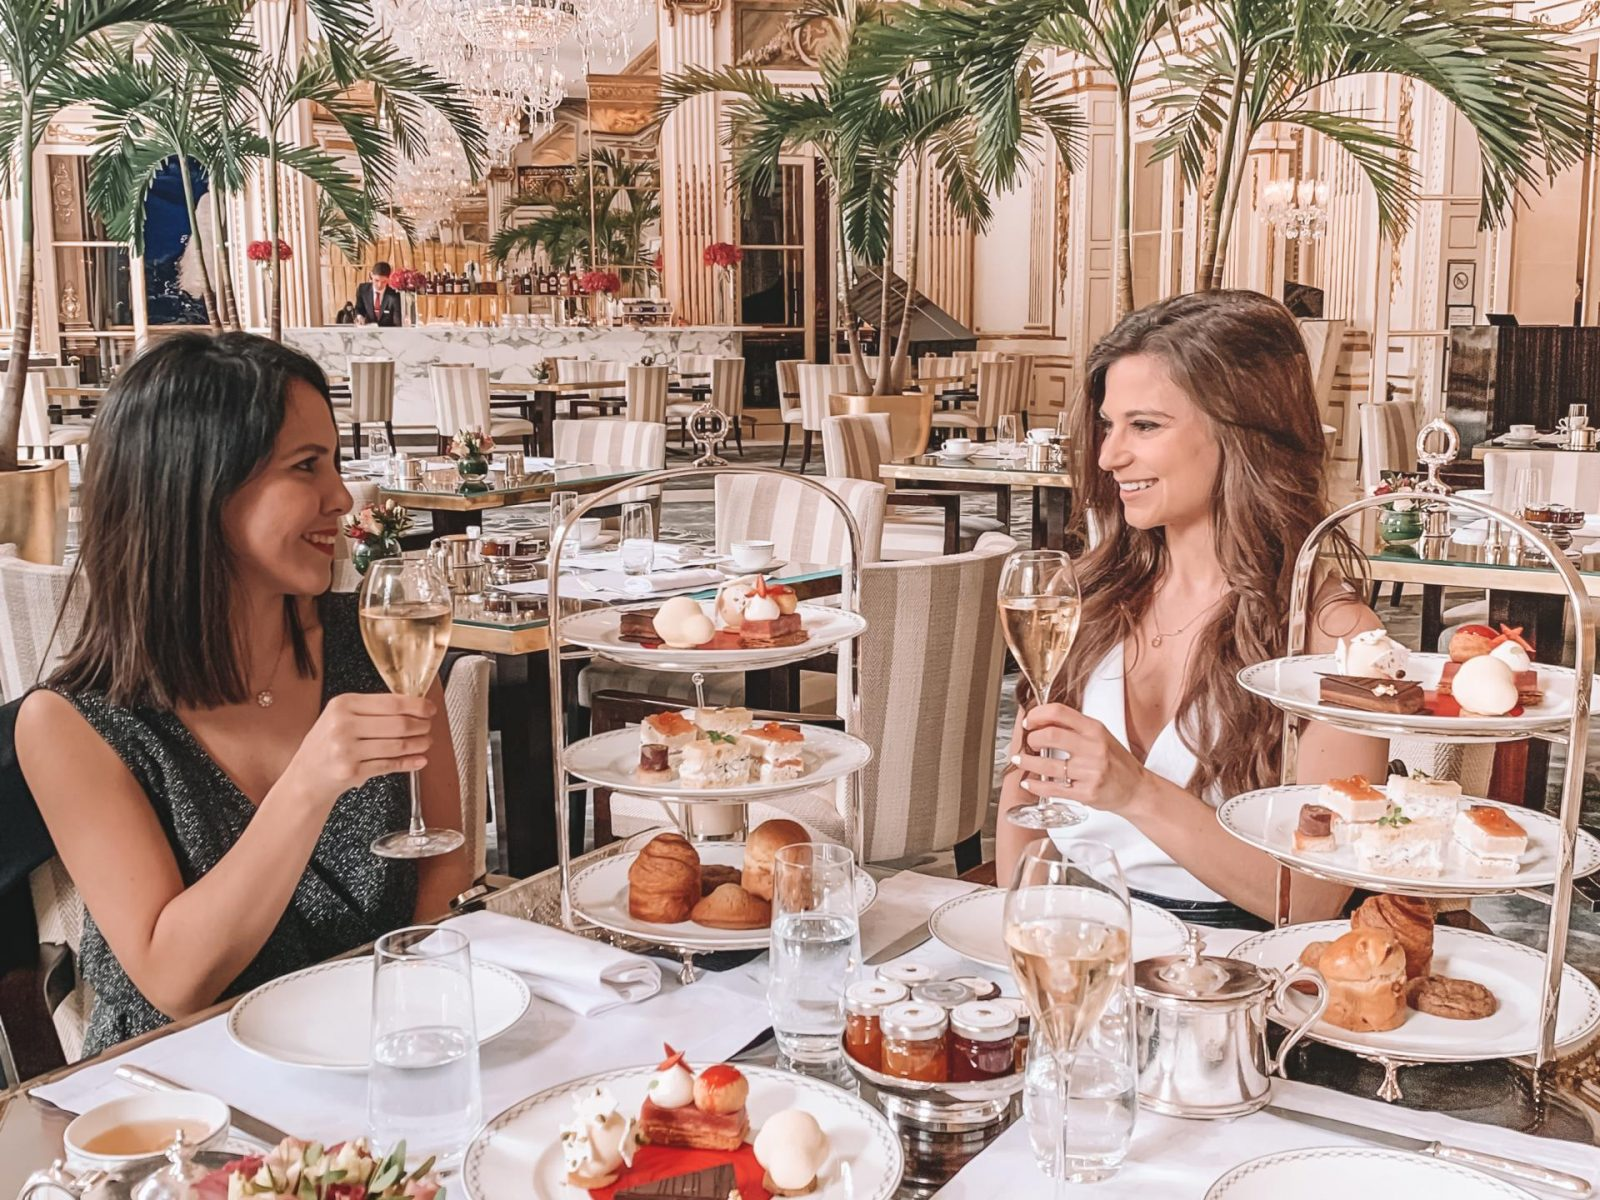 Afternoon Tea-Time at the Peninsula in Paris